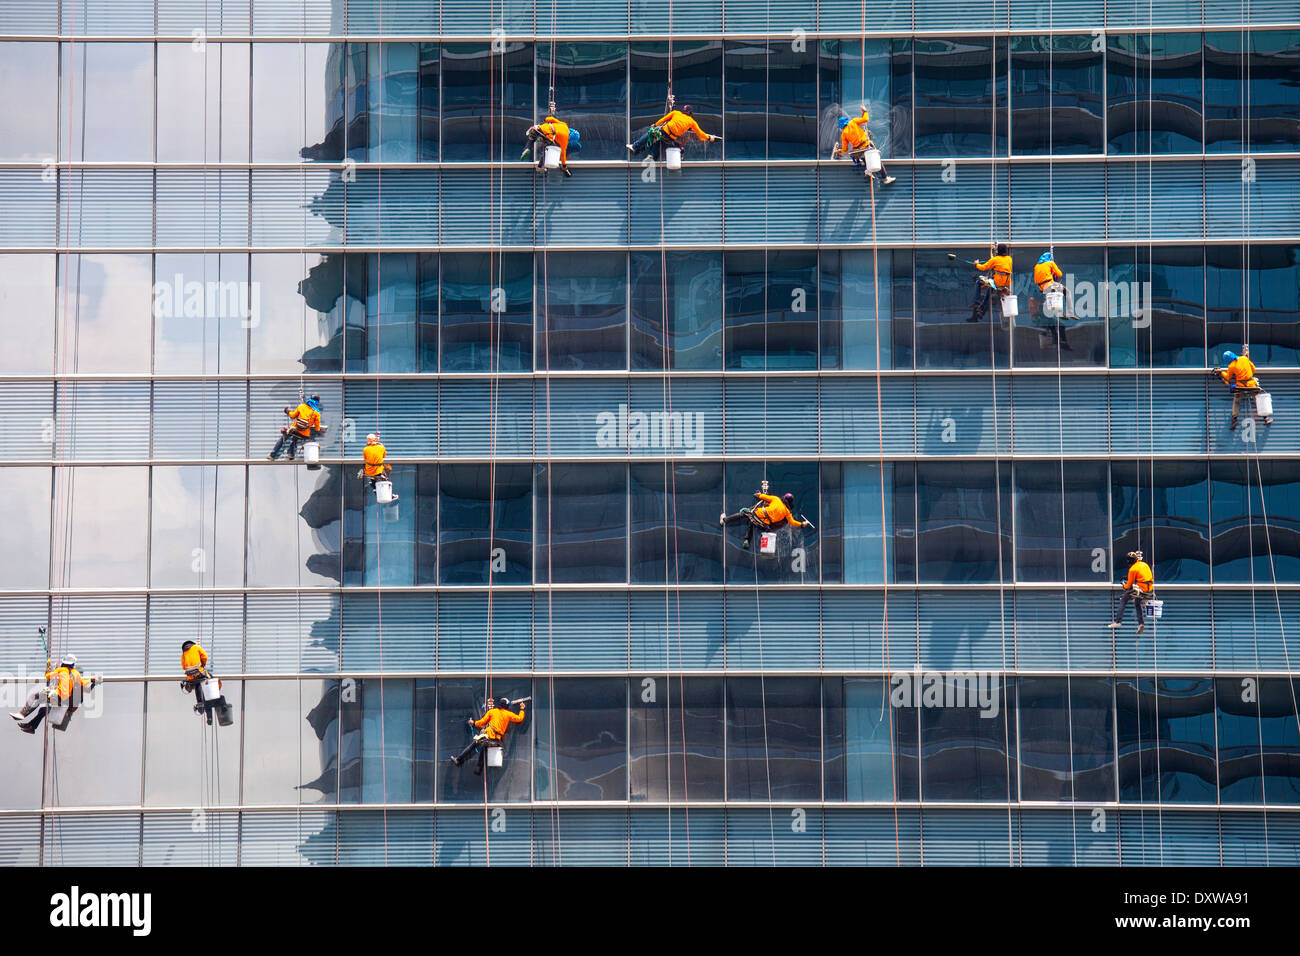 Window washers on a skyscraper in Bangkok, Thailand - Stock Image